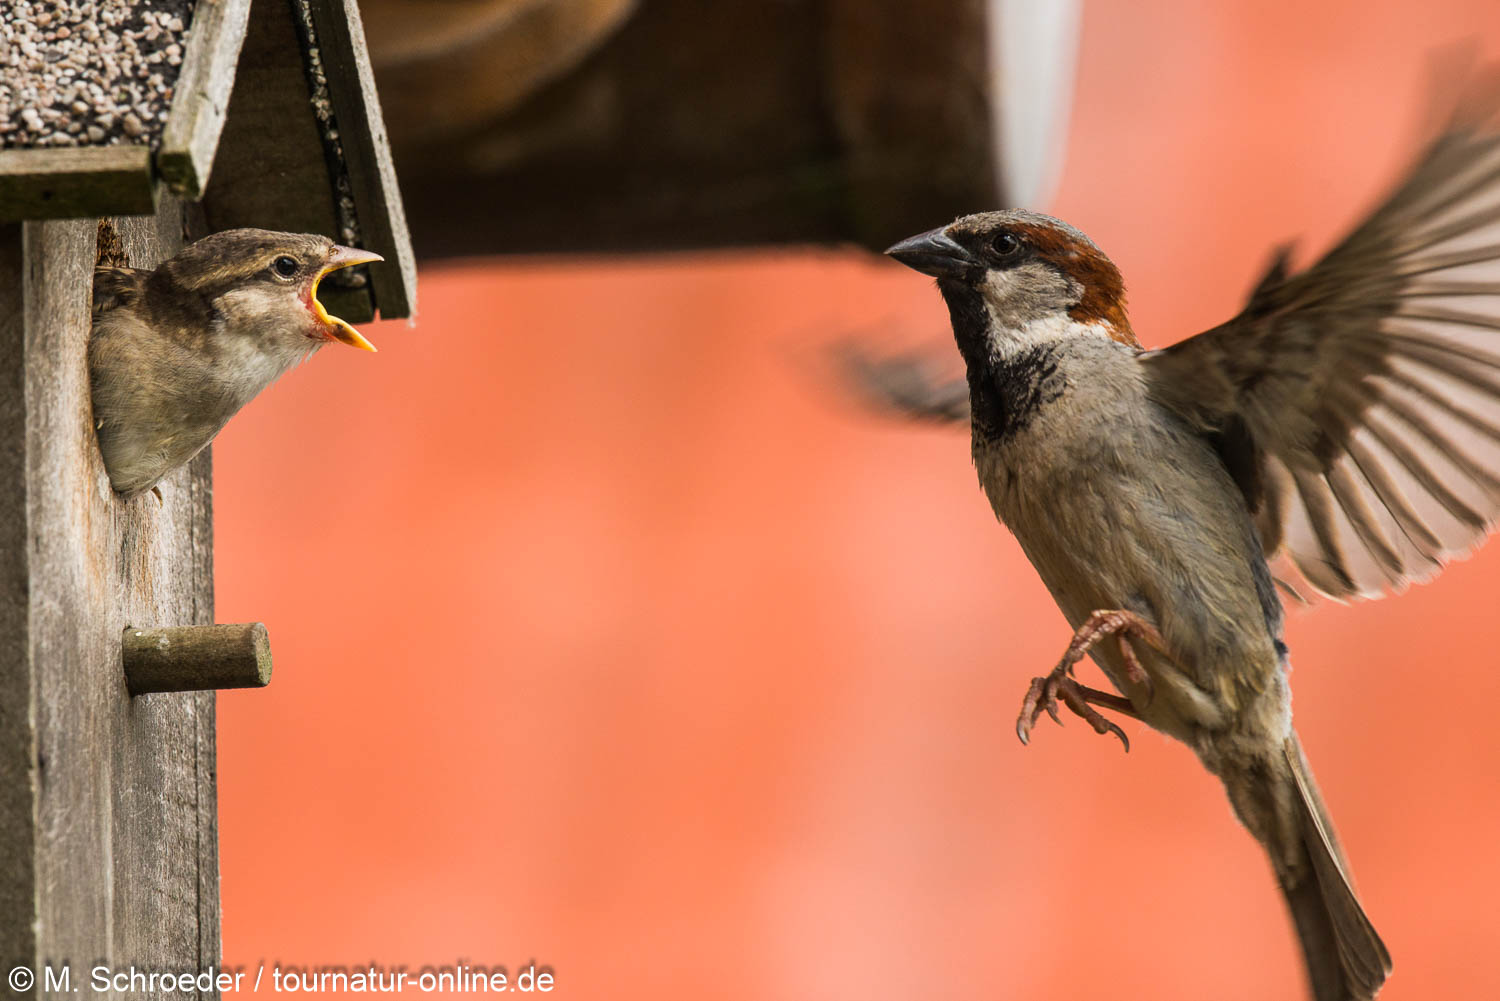 Haussperling - house sparrow (Passer domesticus)